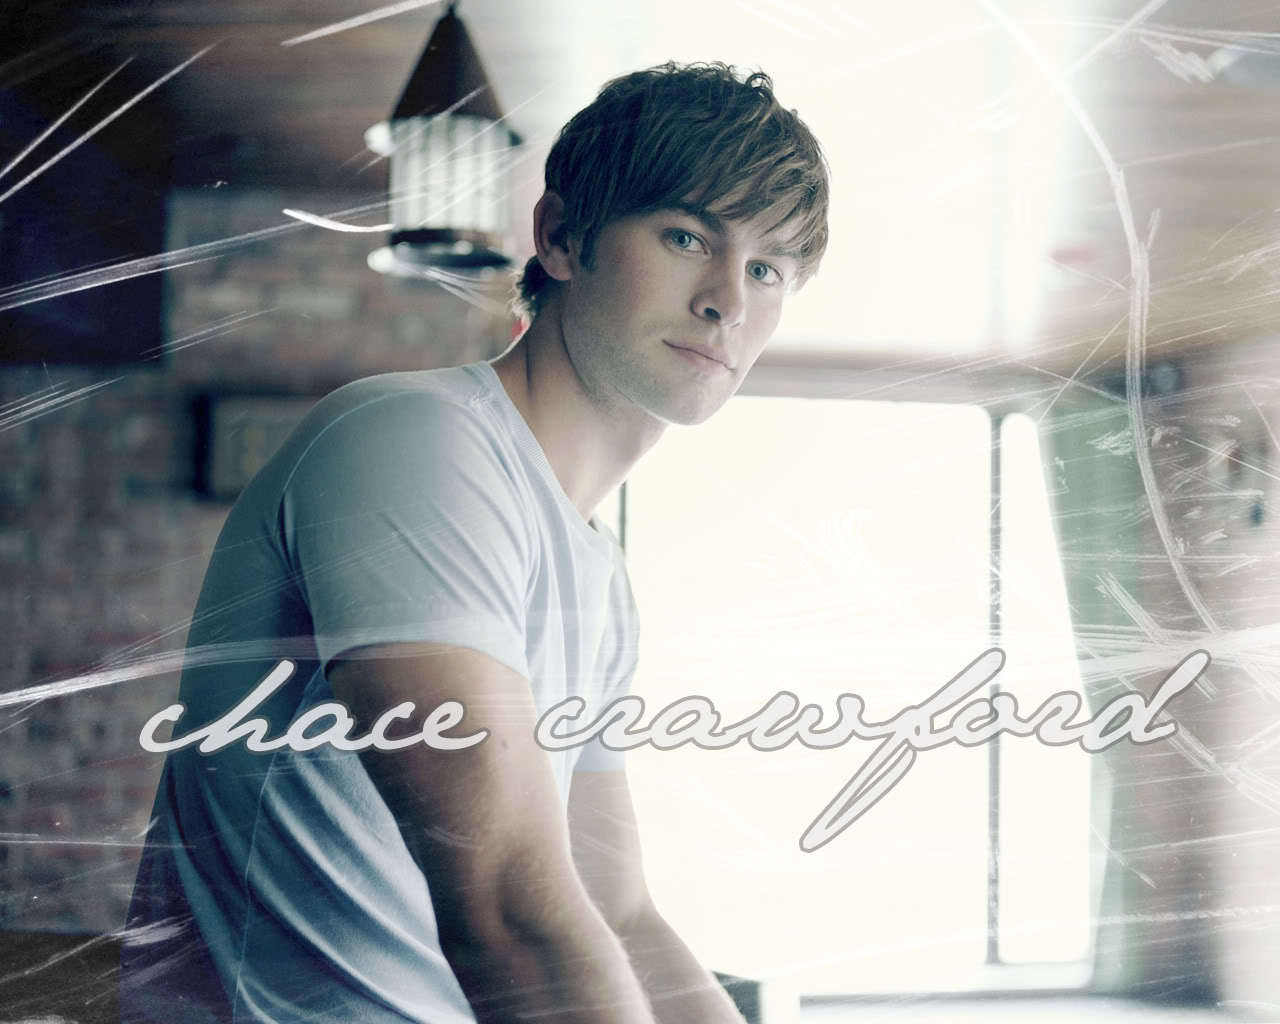 Cartoon pictures of chace crawford - Chace Crawford Chace Crawford Wallpaper 7125381 Fanpop